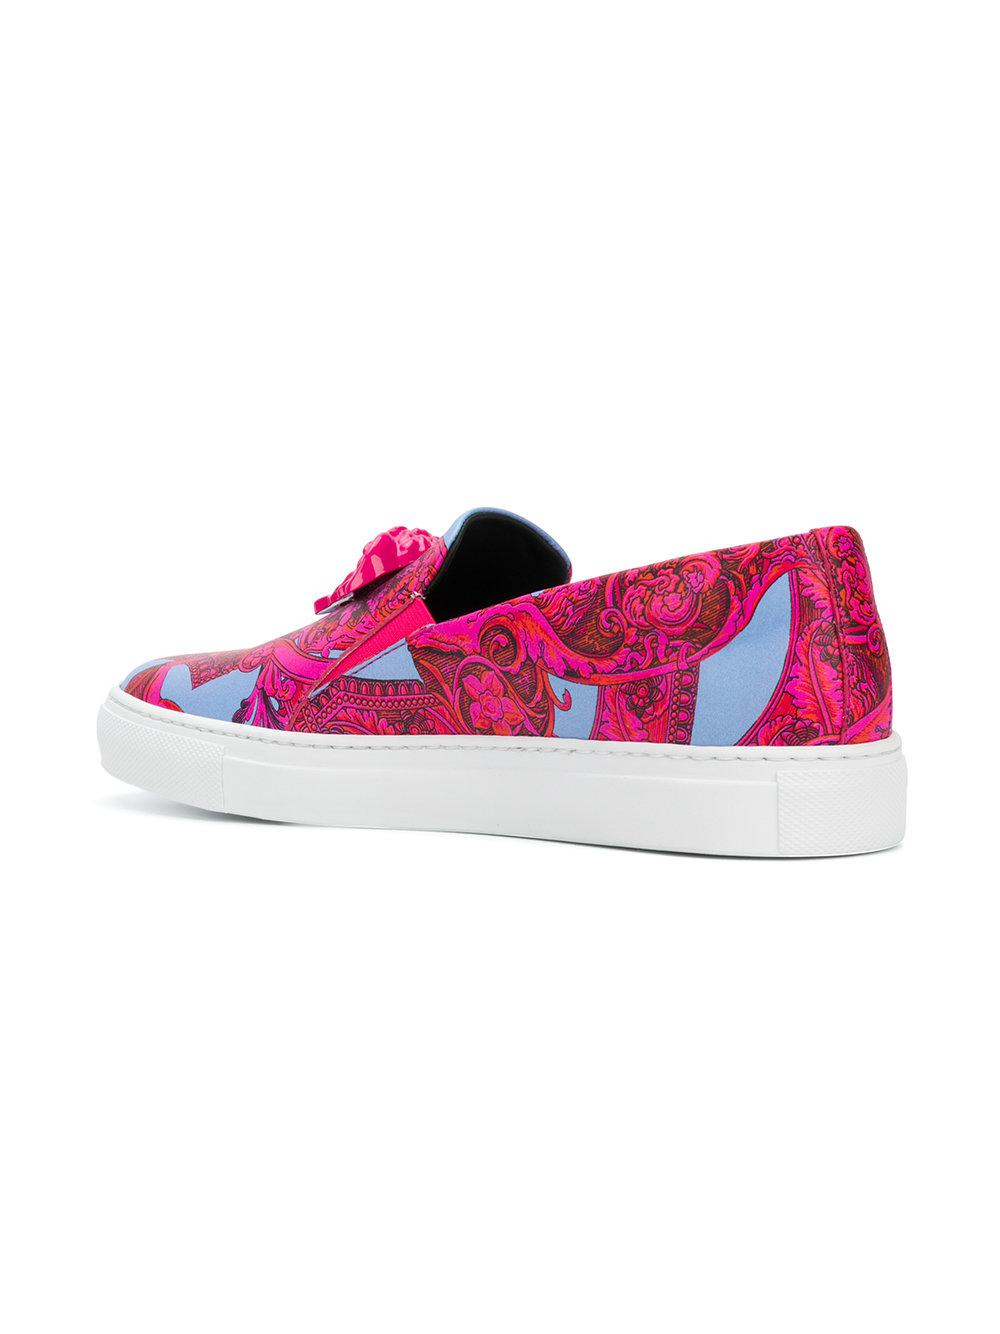 Clearance Footlocker Discount Clearance VERSACE Baroccoflage print sneakers Get Authentic Cheap Price Clearance Popular Buy Cheap Best Seller WLc0qw0A